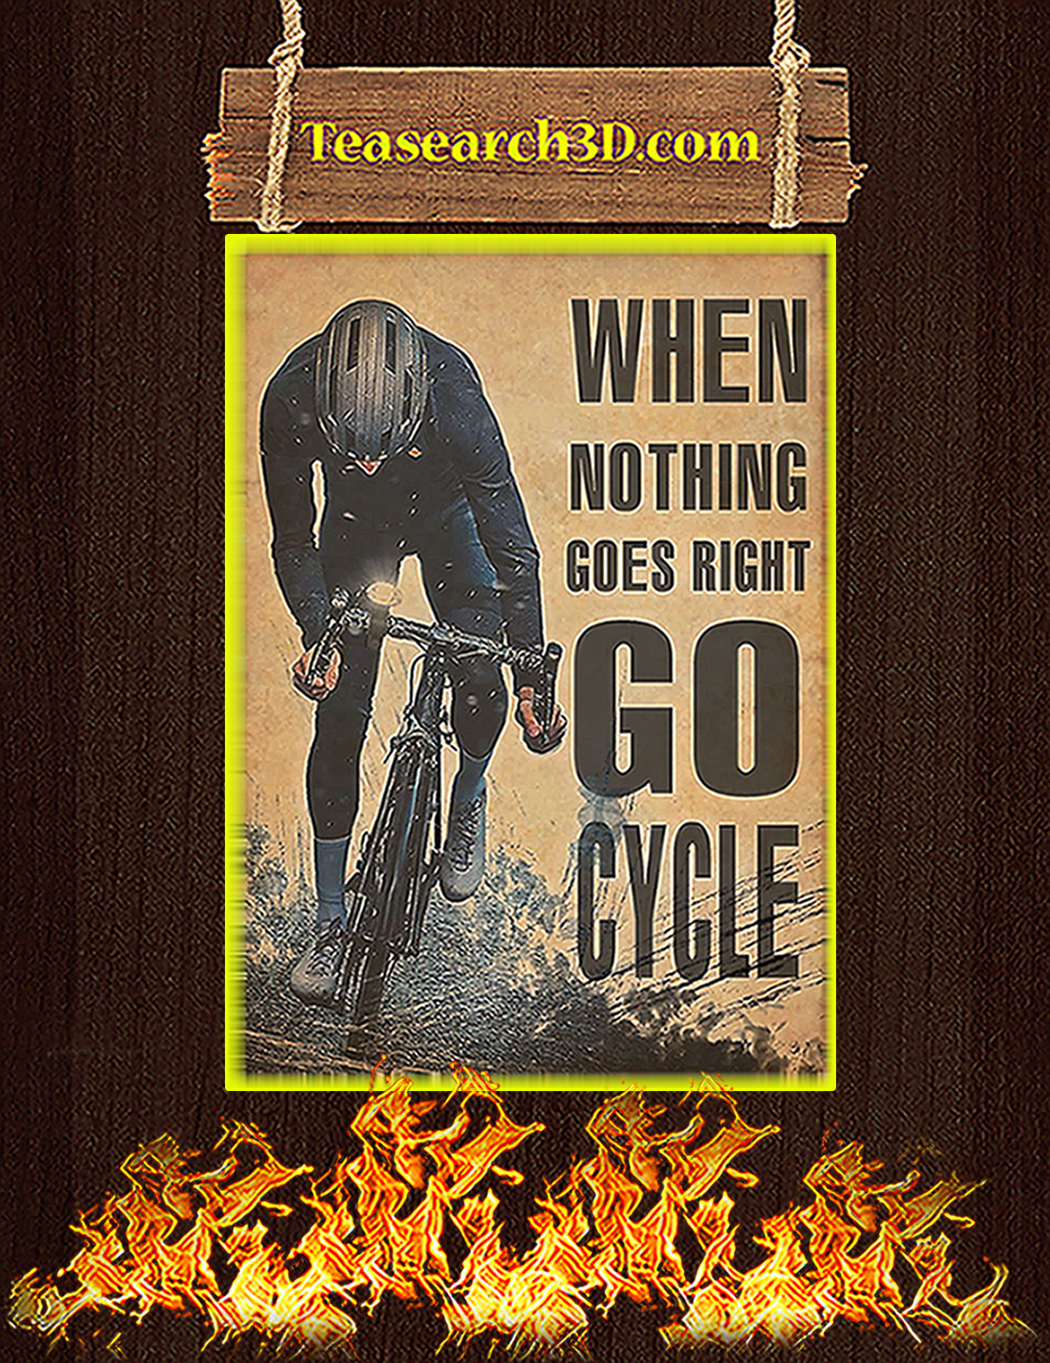 When nothing goes right go cycle poster A1